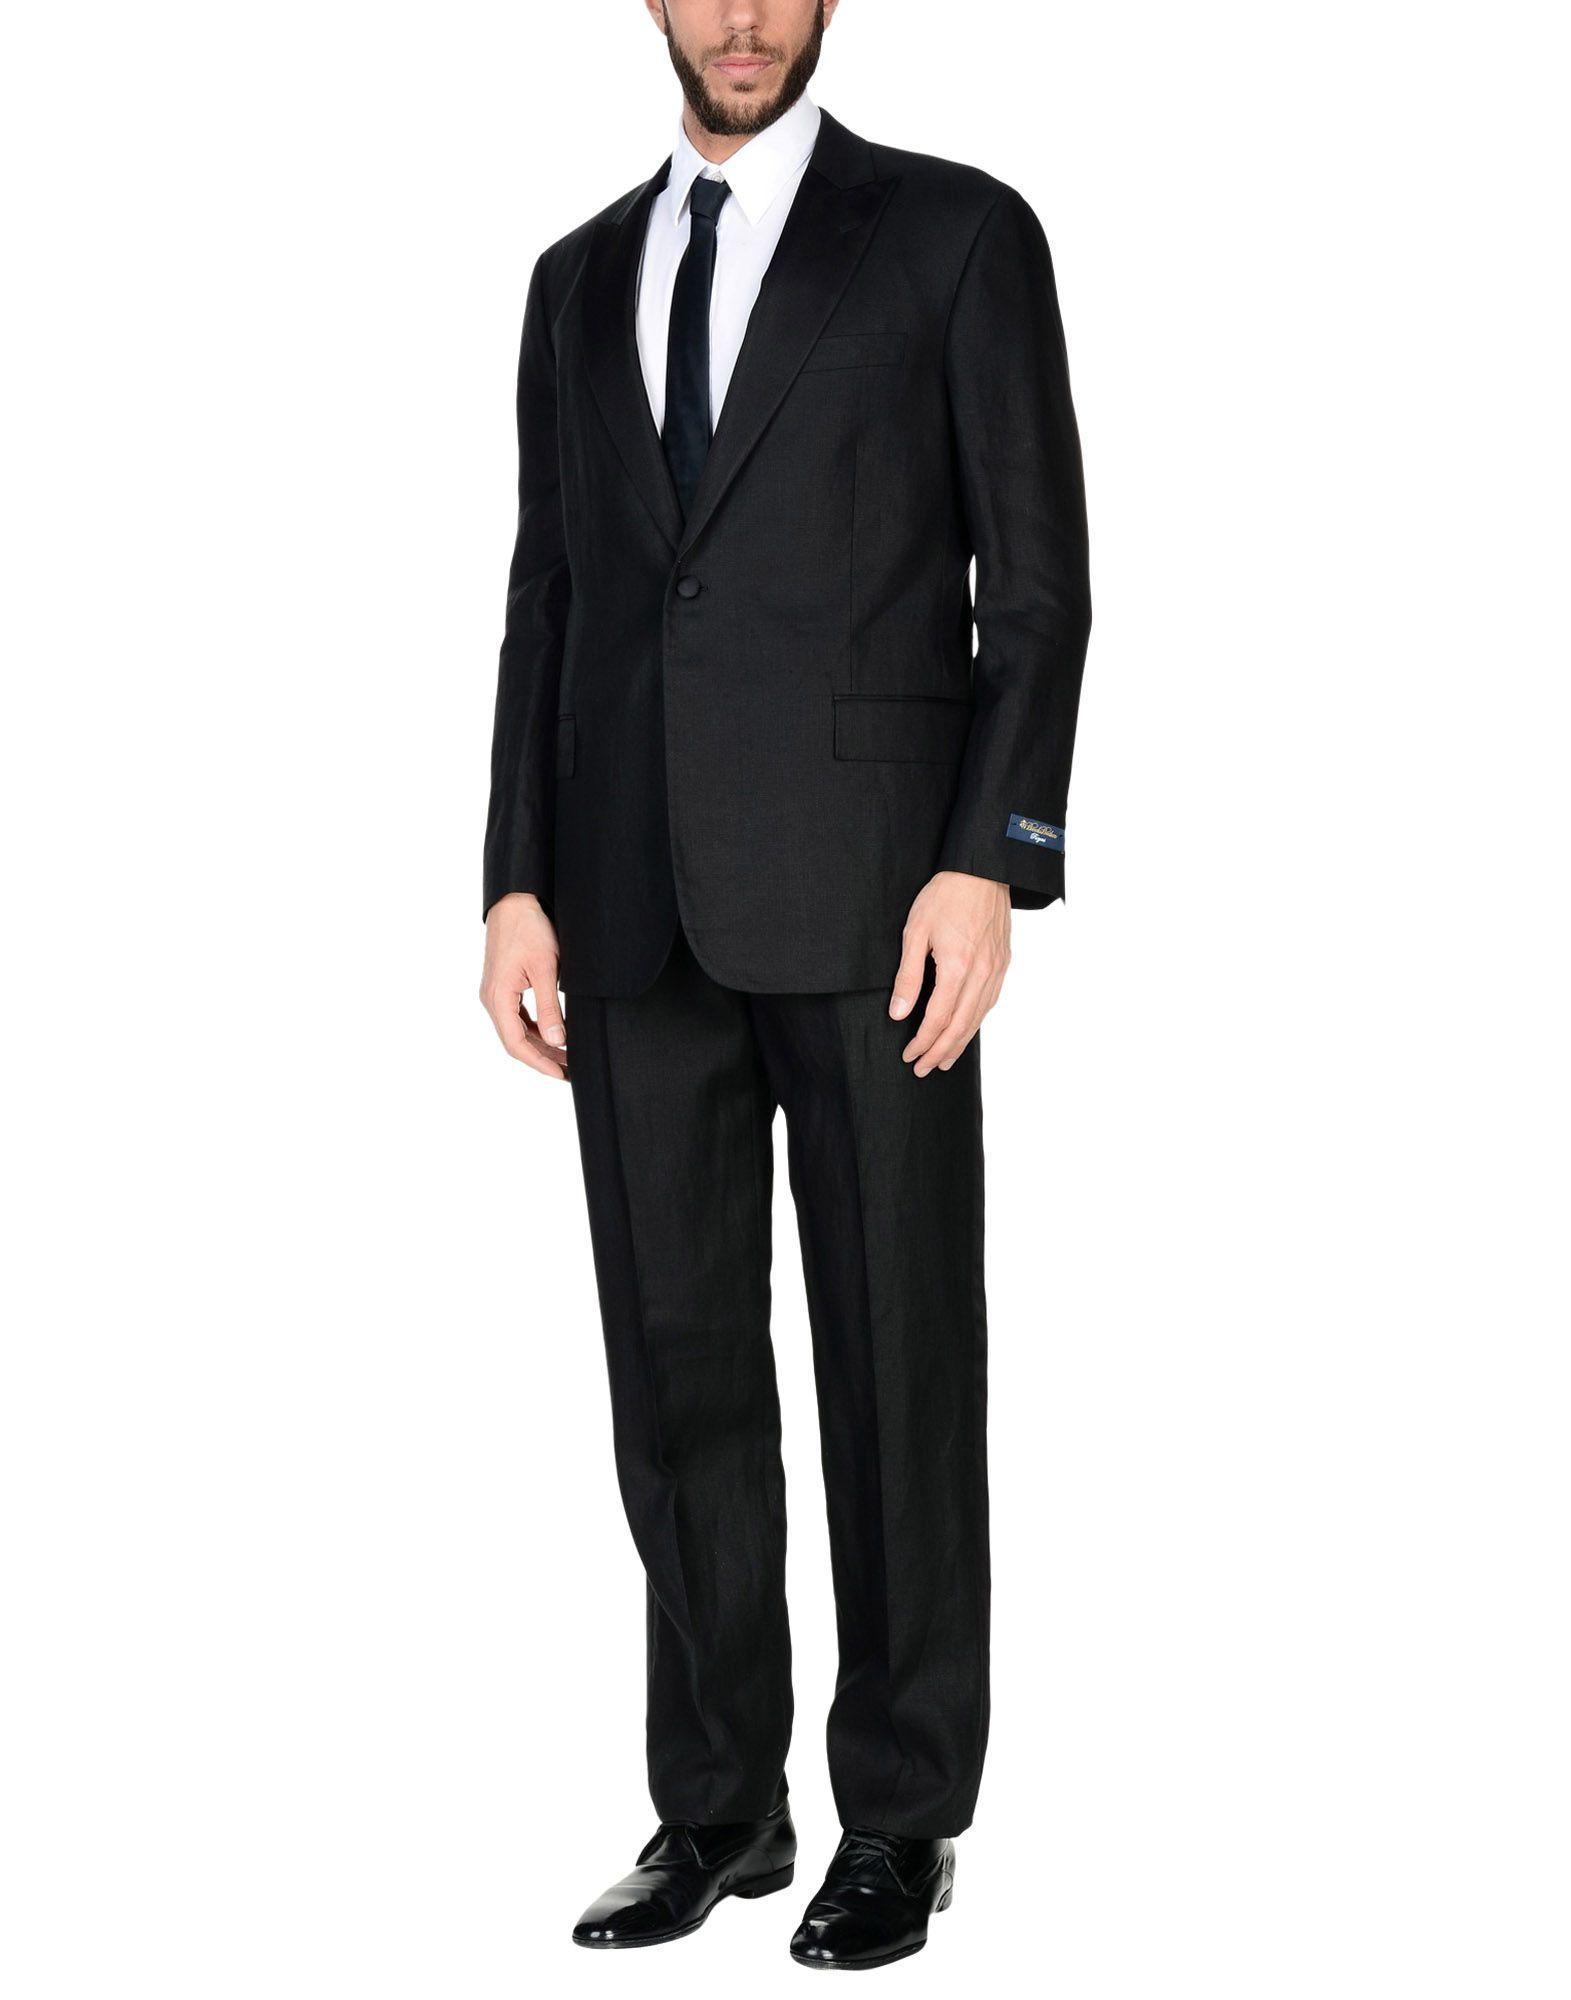 Brooks Brothers Suits In Black